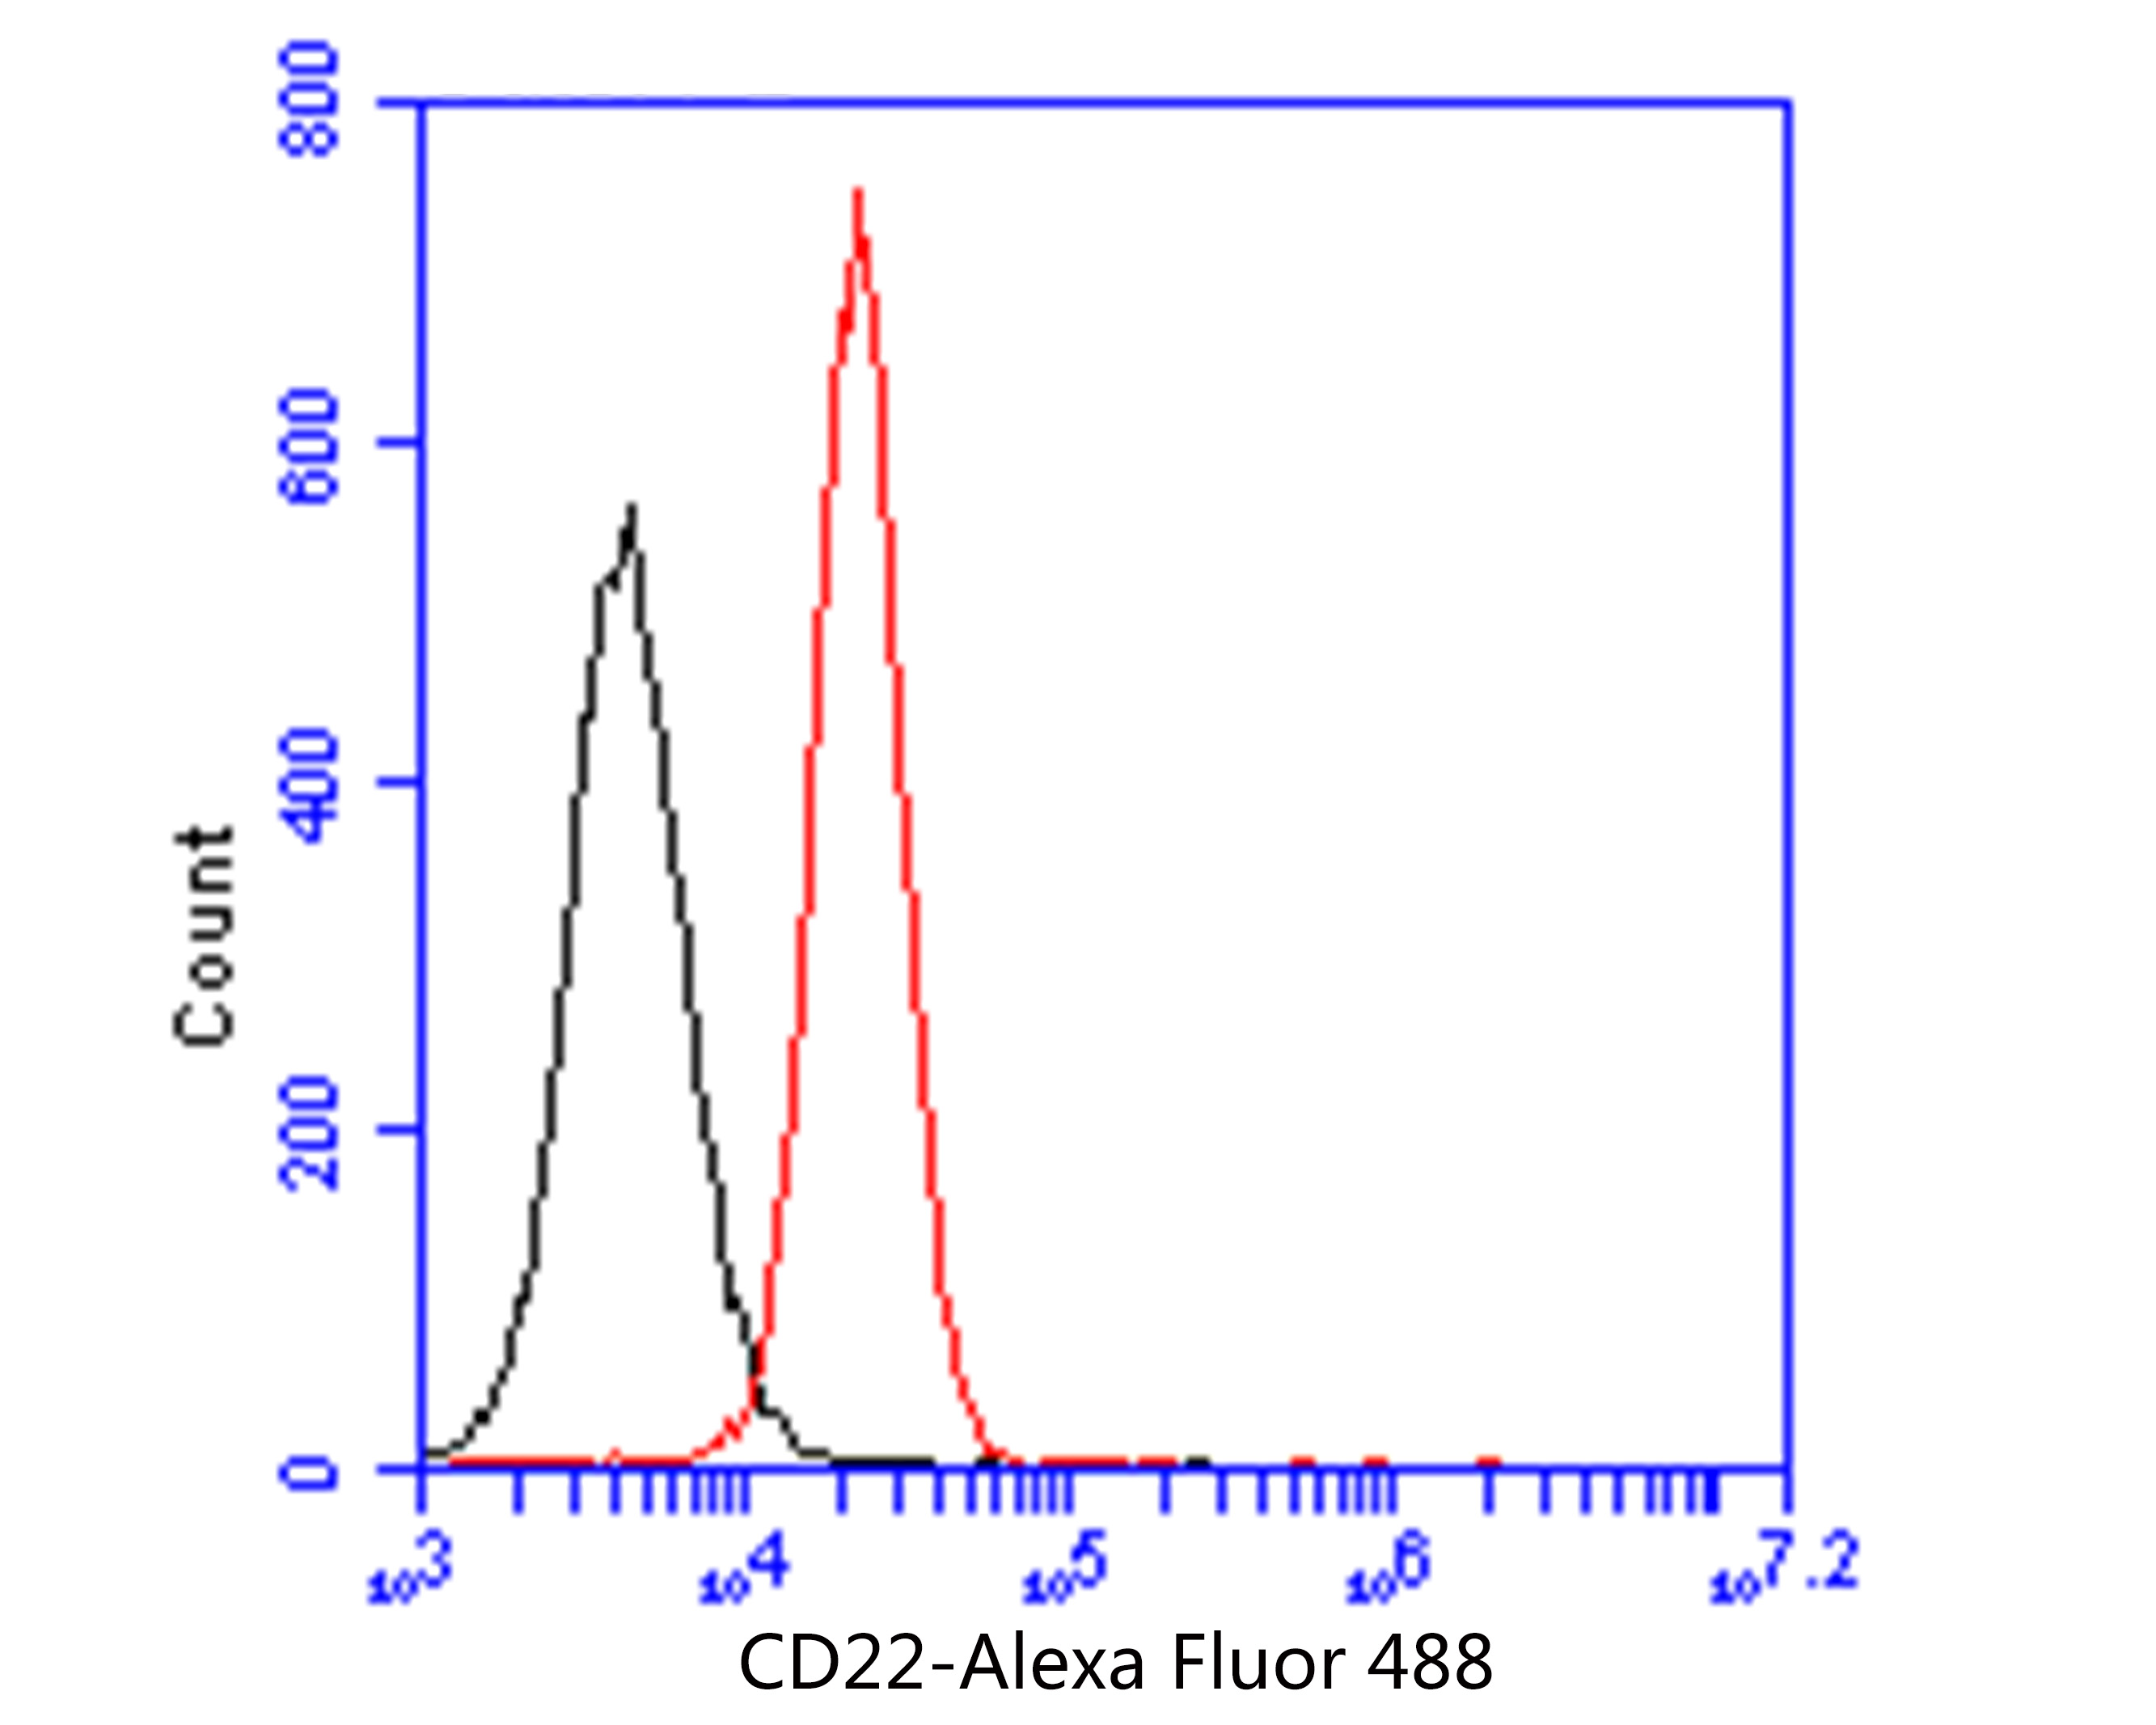 Flow cytometric analysis of CD22 was done on Daudi cells. The cells were fixed, permeabilized and stained with the primary antibody (EM1902-13, 1/100) (red). After incubation of the primary antibody at room temperature for an hour, the cells were stained with a Alexa FluorTM488 Goat anti-Mouse IgG Secondary antibody at 1/500 dilution for 30 minutes.Unlabelled sample was used as a control (cells without incubation with primary antibody; blcak).